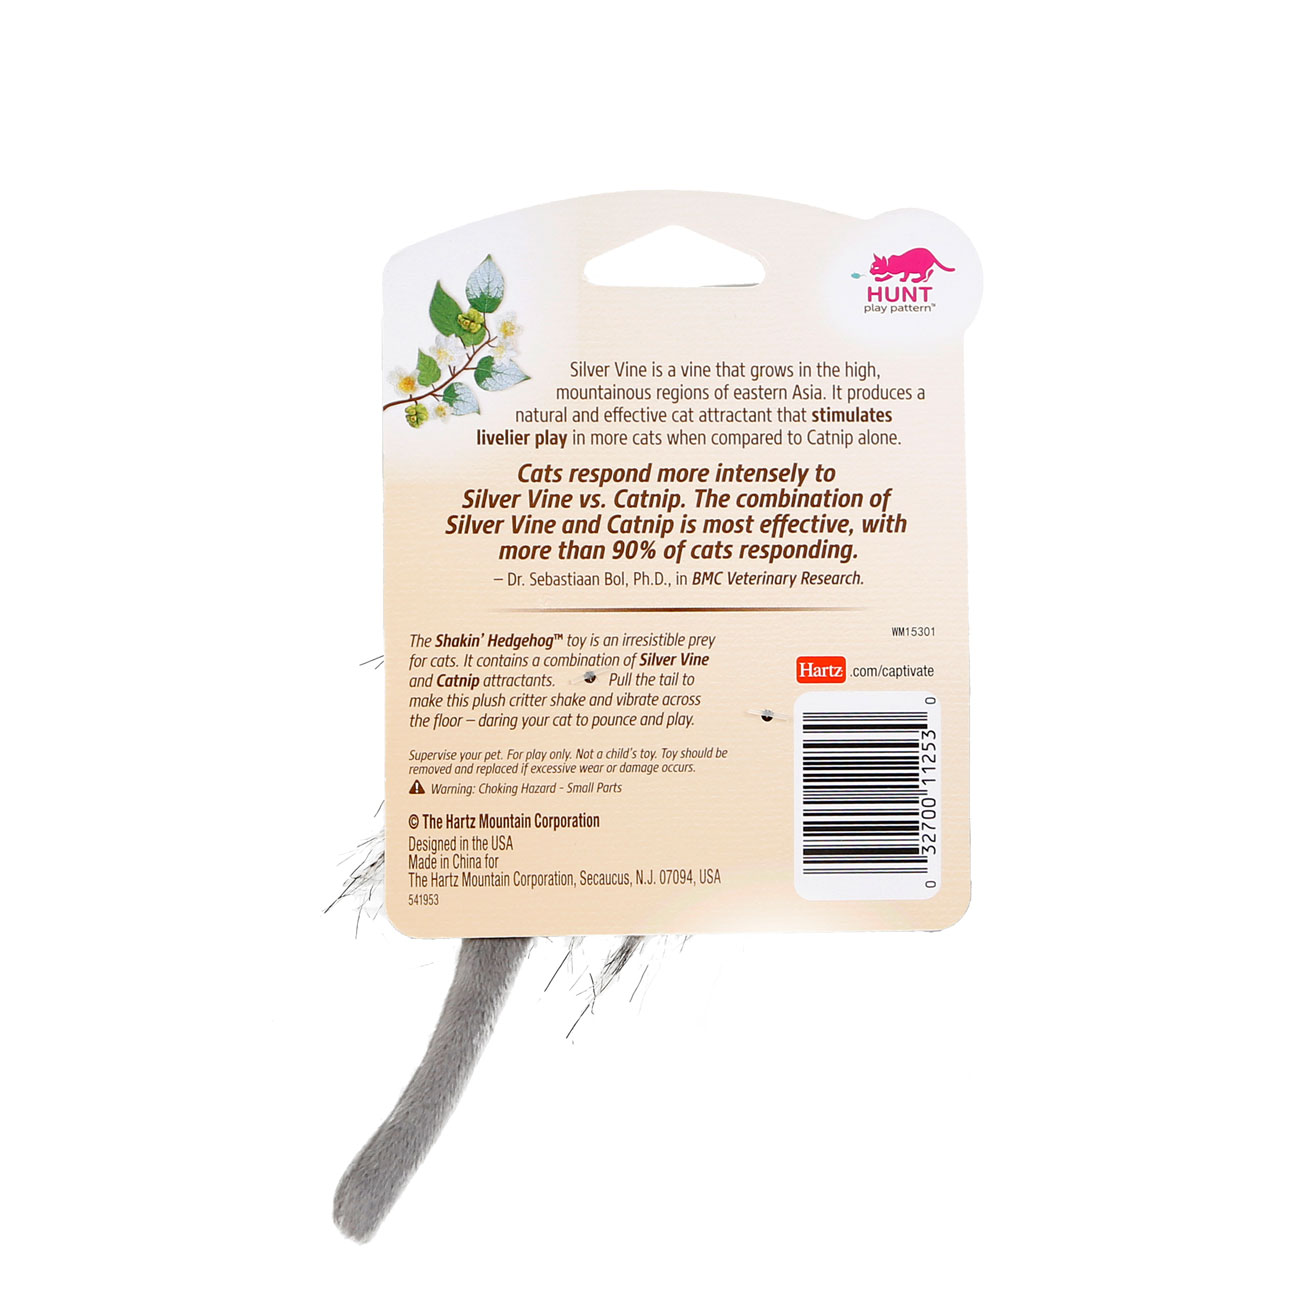 Hartz captivate shakin hedgehog cat toy with silver vine and catnip. Back of package. Hartz SKU# 3270011253